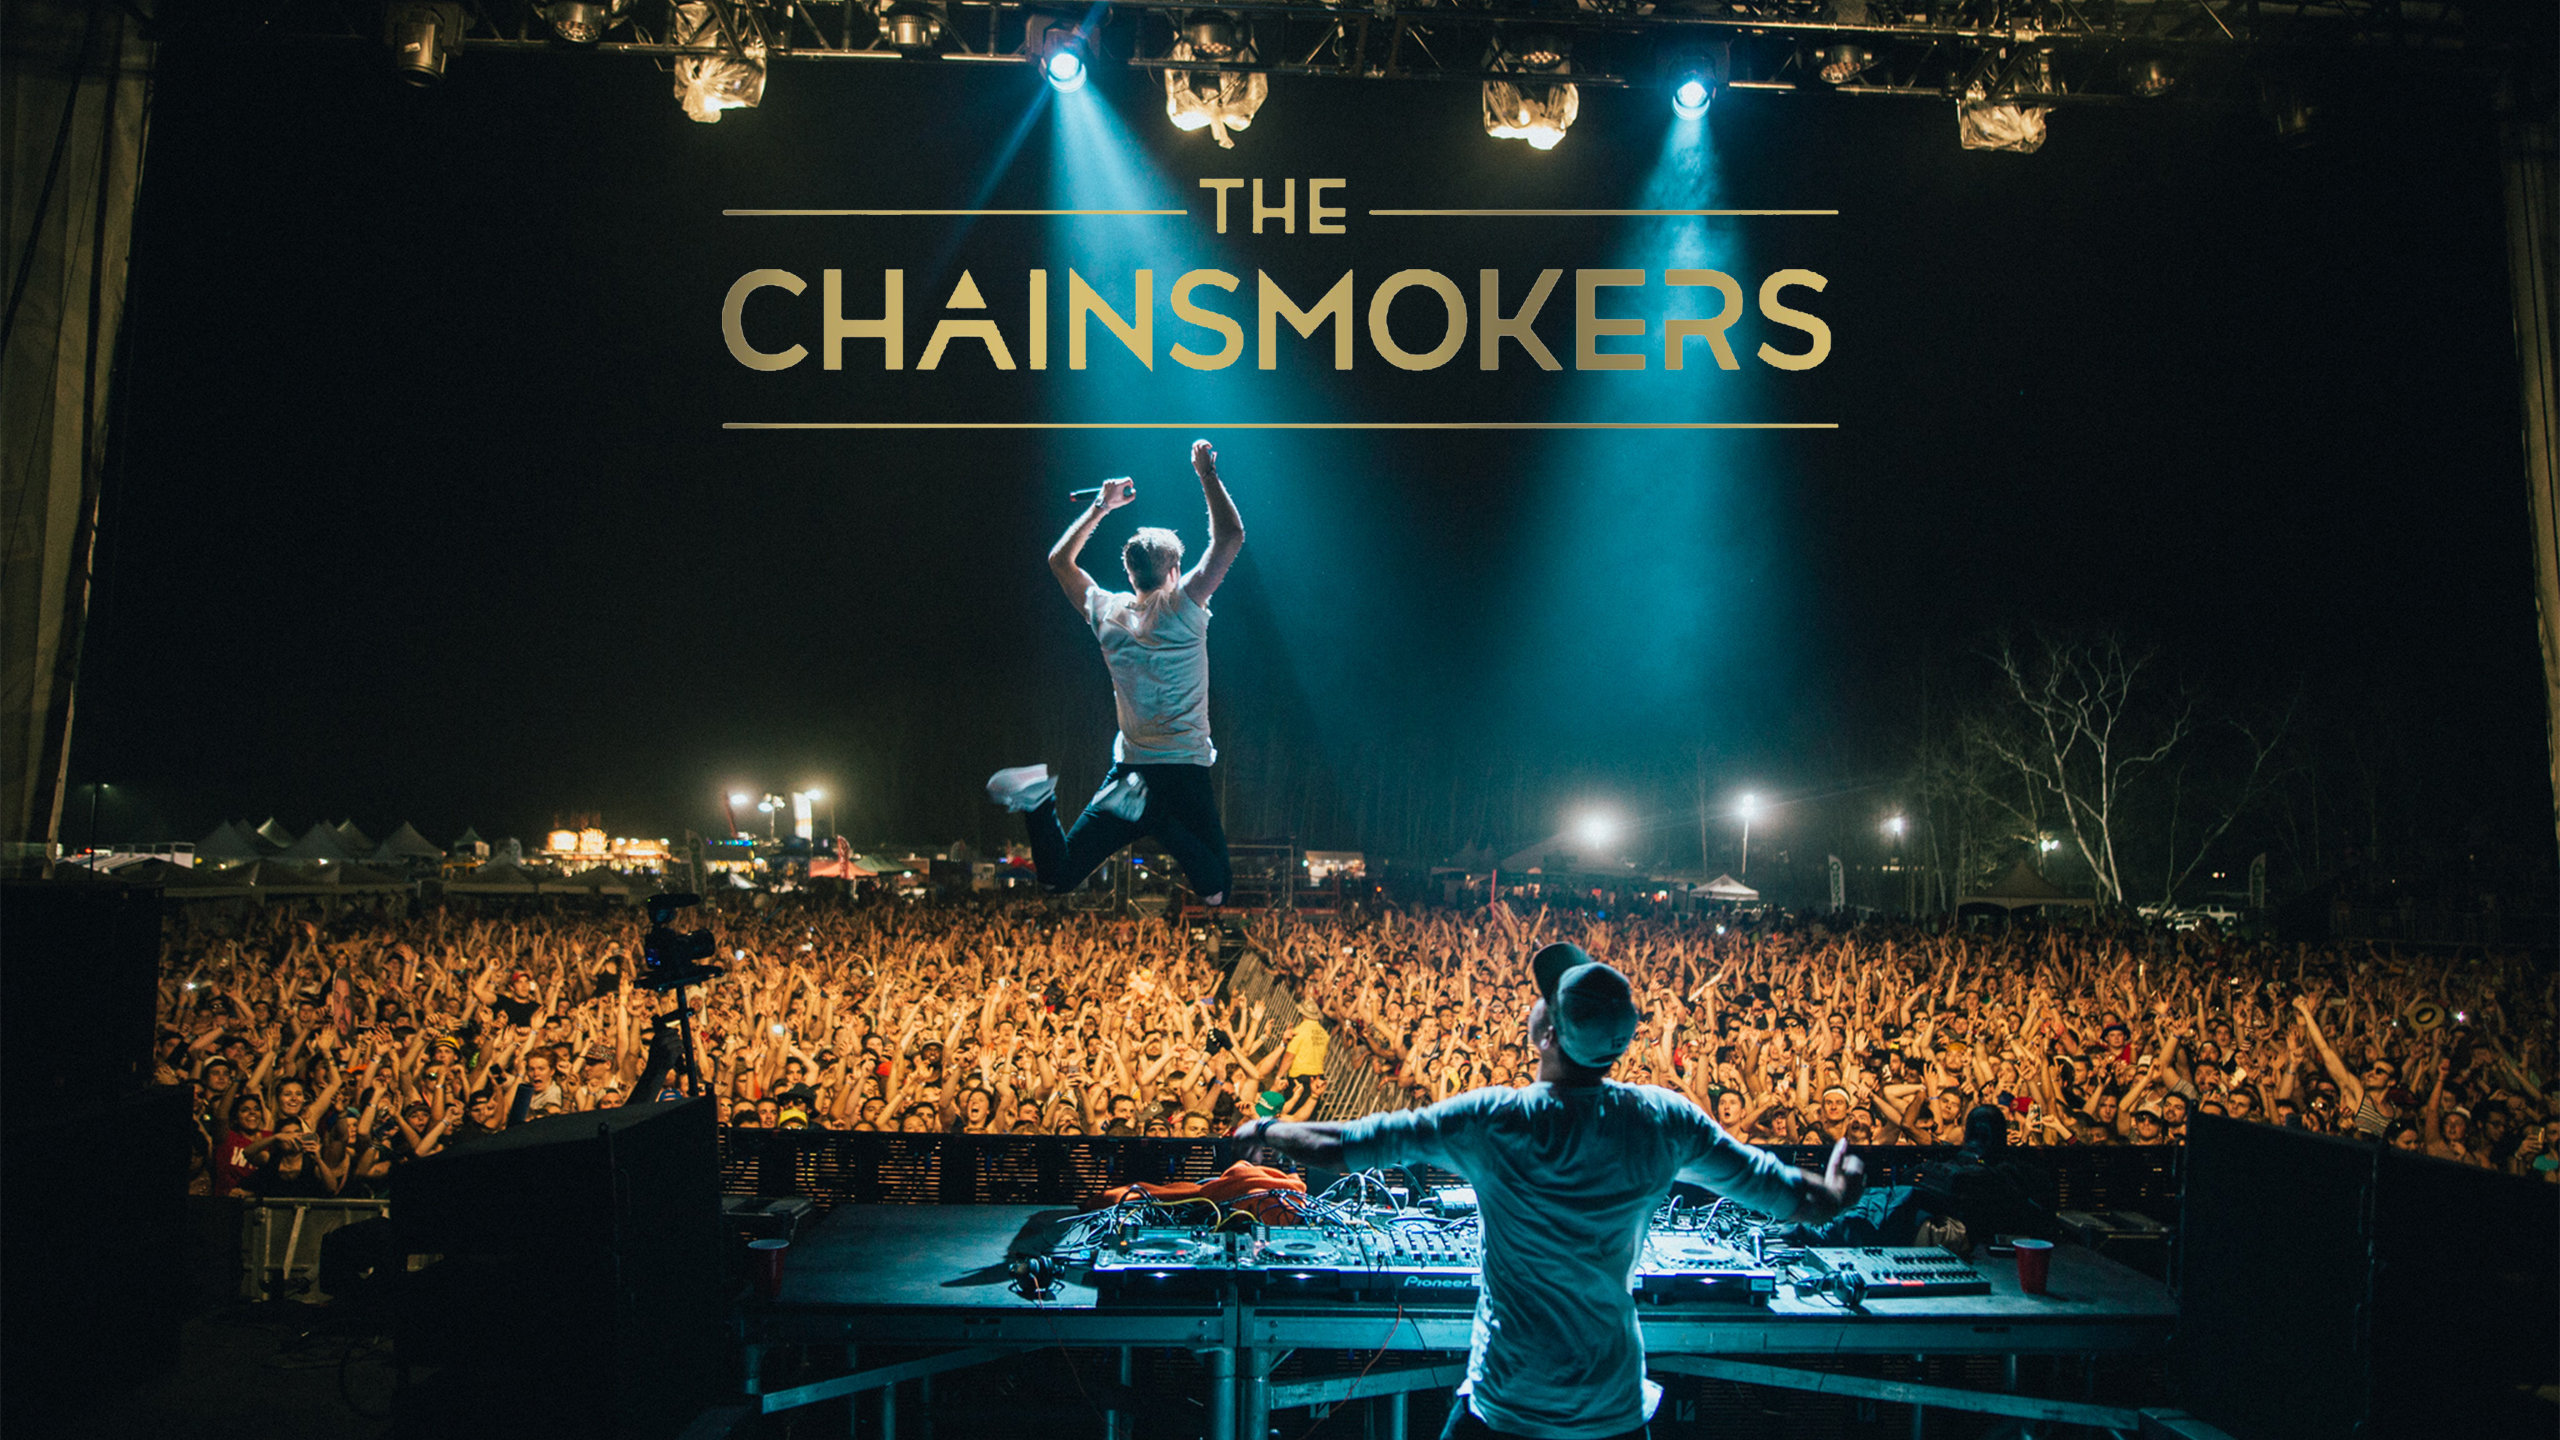 the chainsmokers wallpaper background 62737